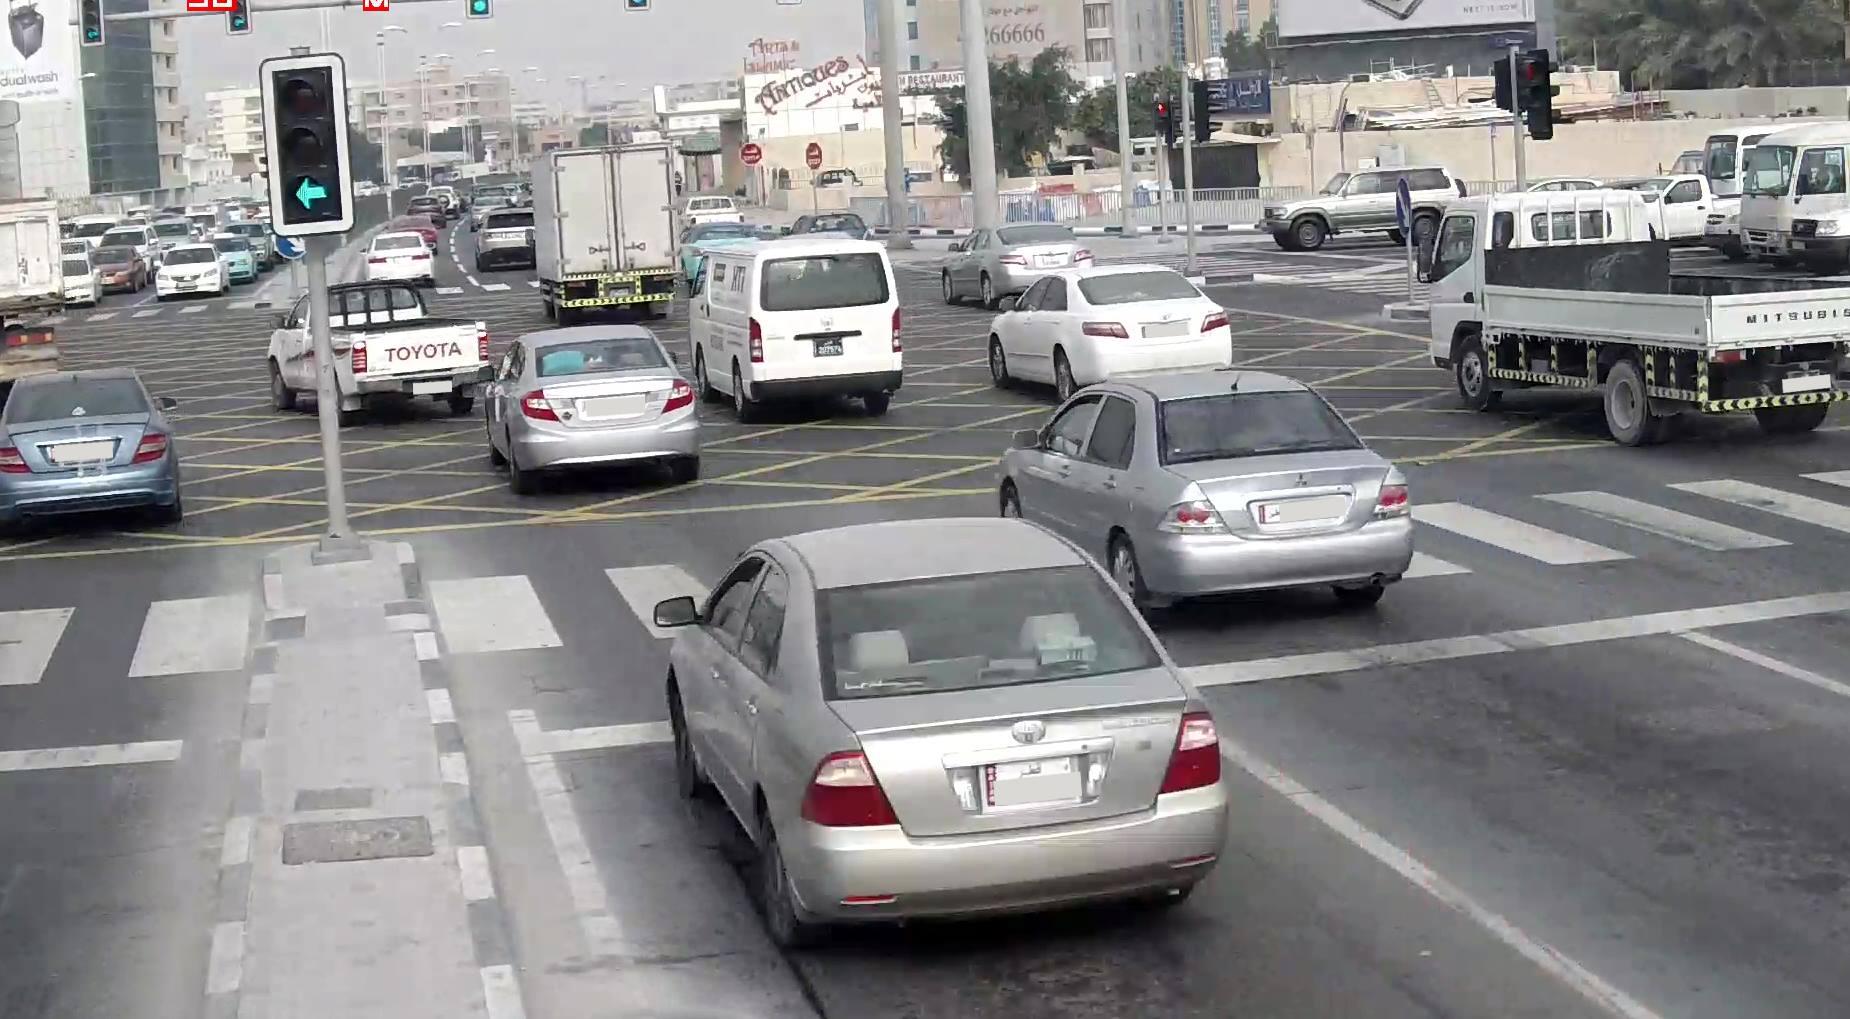 Activating new cameras at intersections